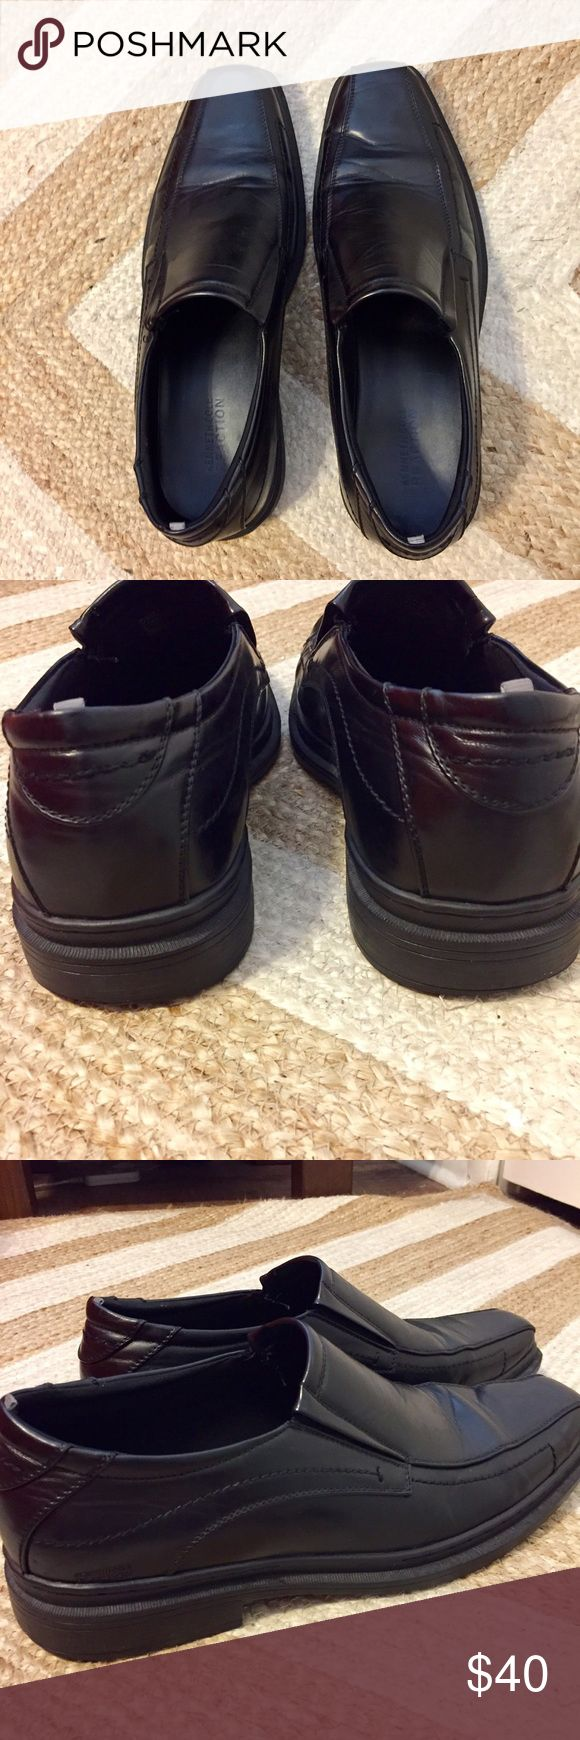 Kenneth Cole Reaction Men's Dress Loafers Kenneth Cole Reaction Men's Dress Loafers size 13. Very good condition. Open to all reasonable offers. Kenneth Cole Reaction Shoes Loafers & Slip-Ons